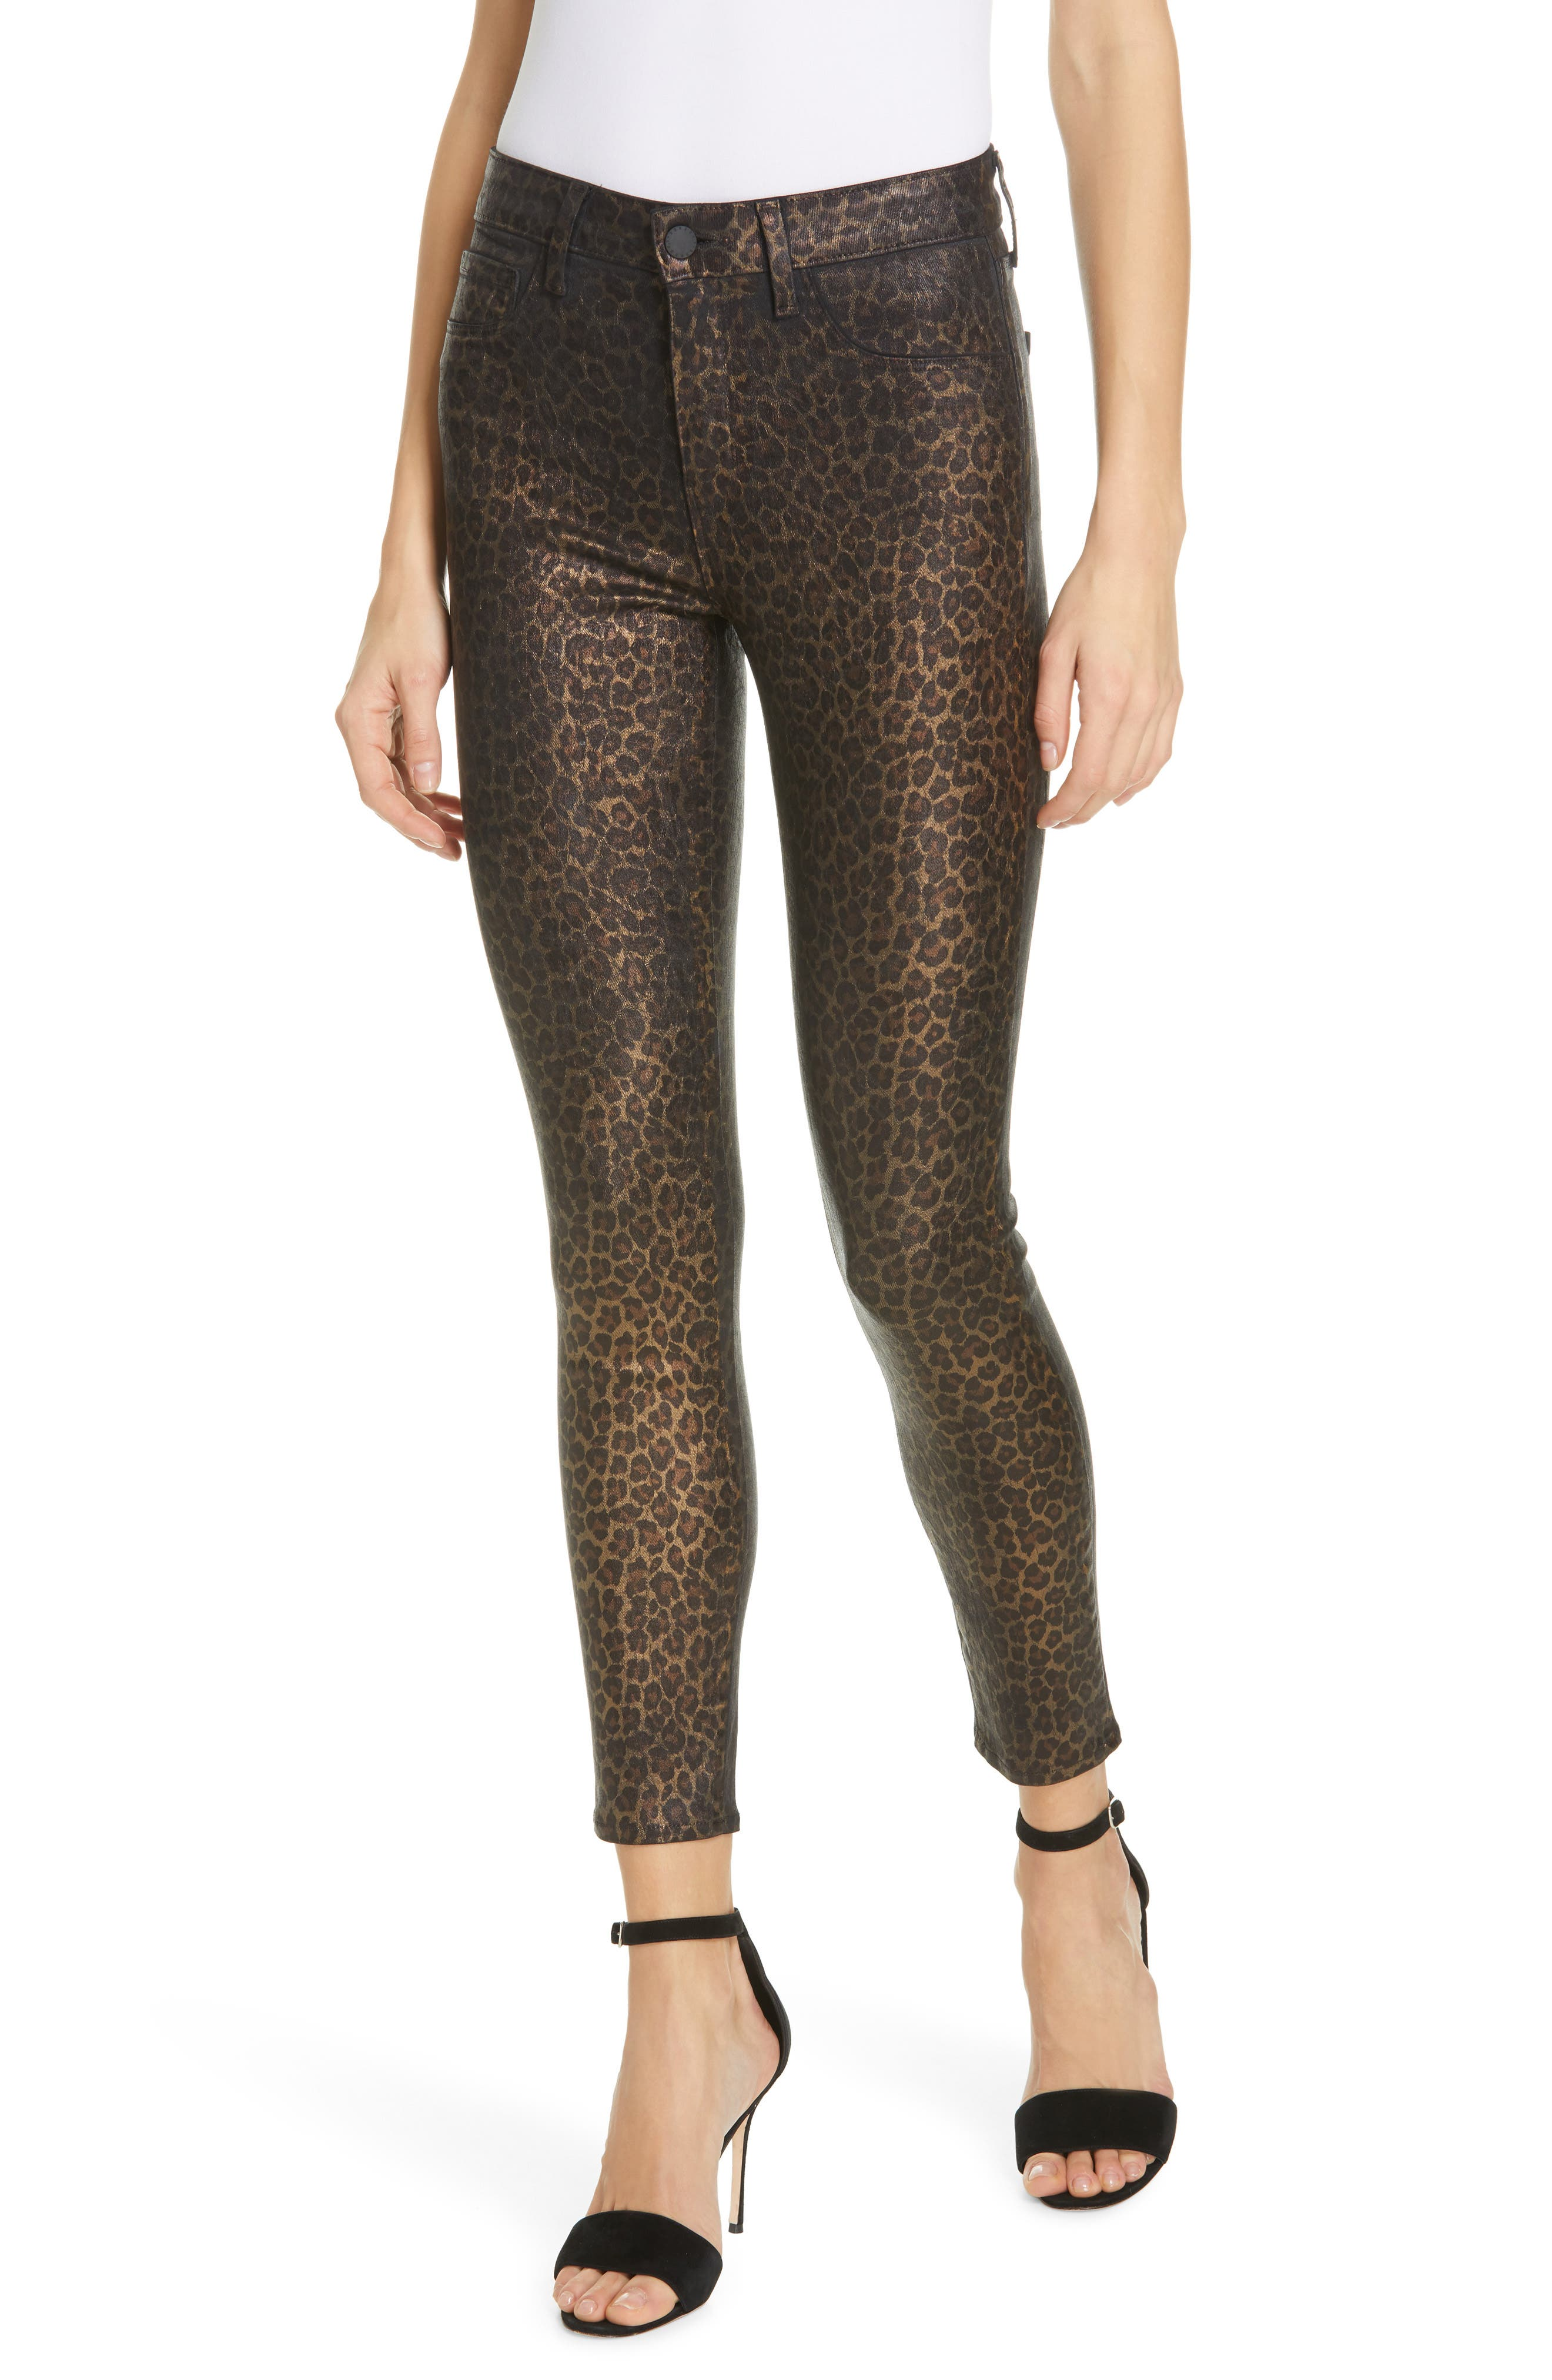 L'AGENCE, Margot Metallic Coated Crop Skinny Jeans, Main thumbnail 1, color, BLACK CHEETAH CRACKLE FOIL